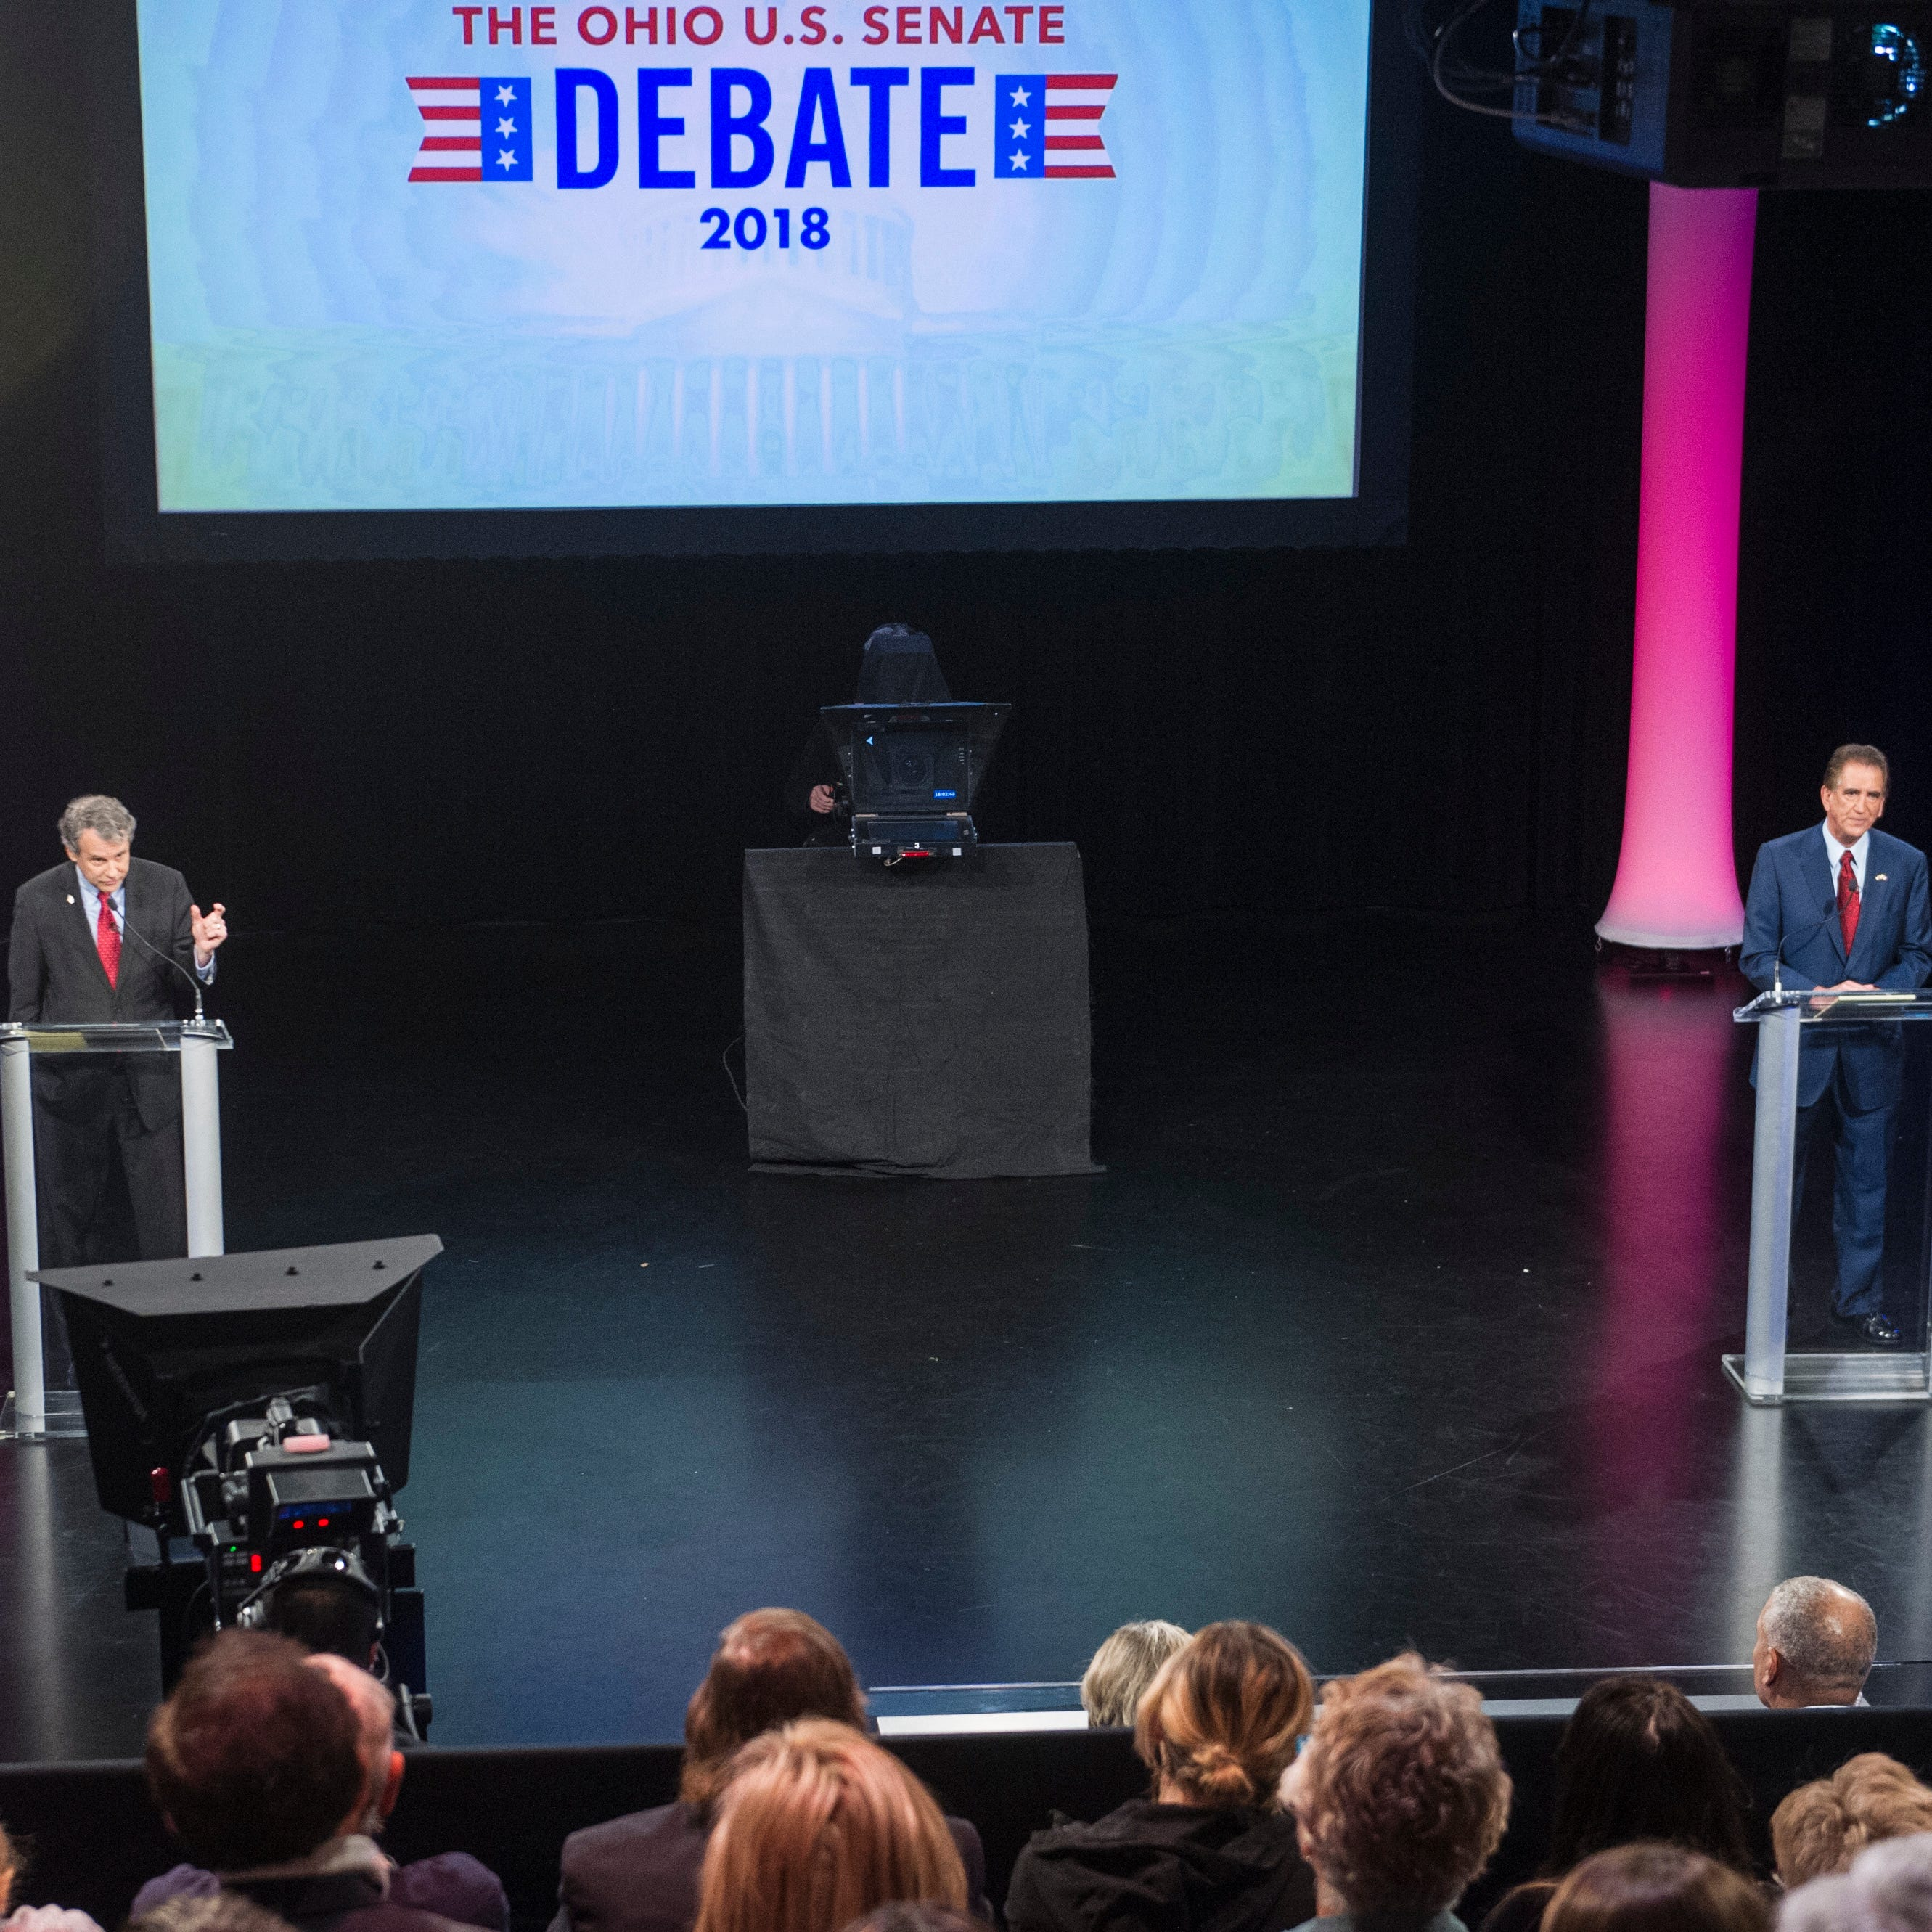 Renacci/Brown debate turns tense. Brown tells Renacci 'You should be ashamed of yourself'